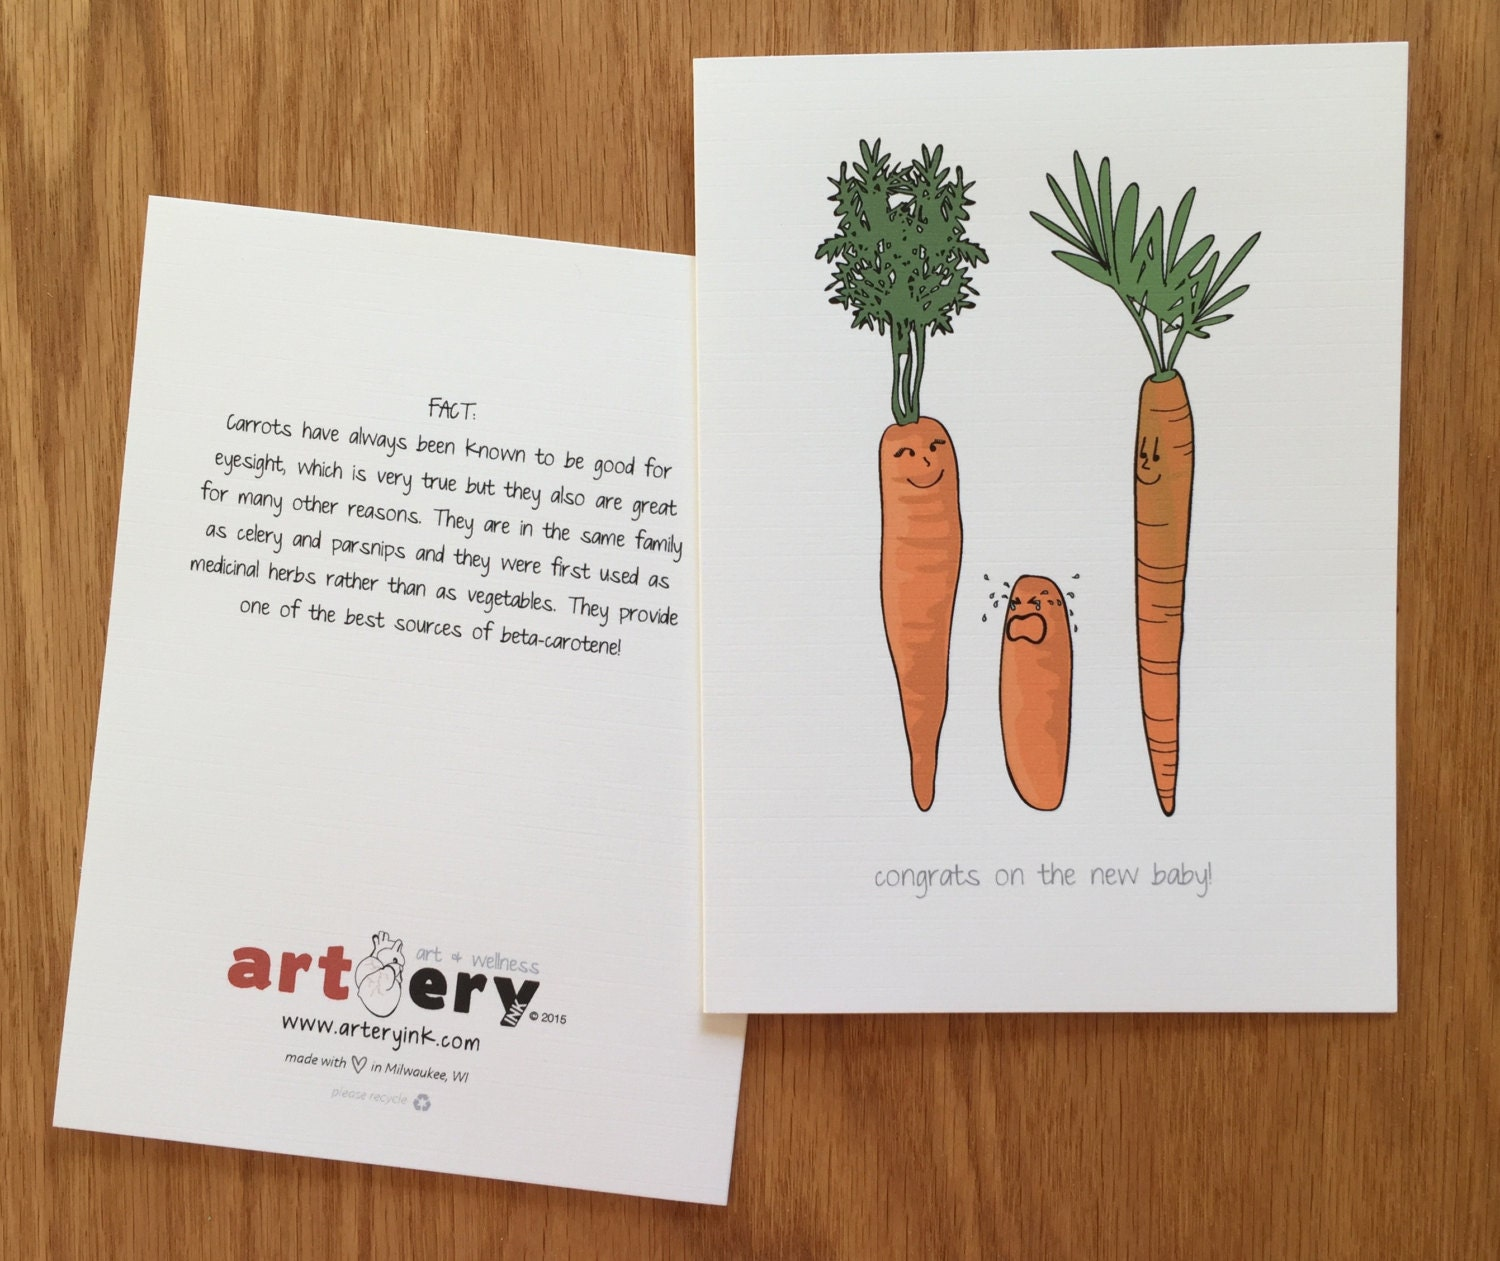 Baby Carrot Congrats New Baby Greeting Card 5x7 Etsy